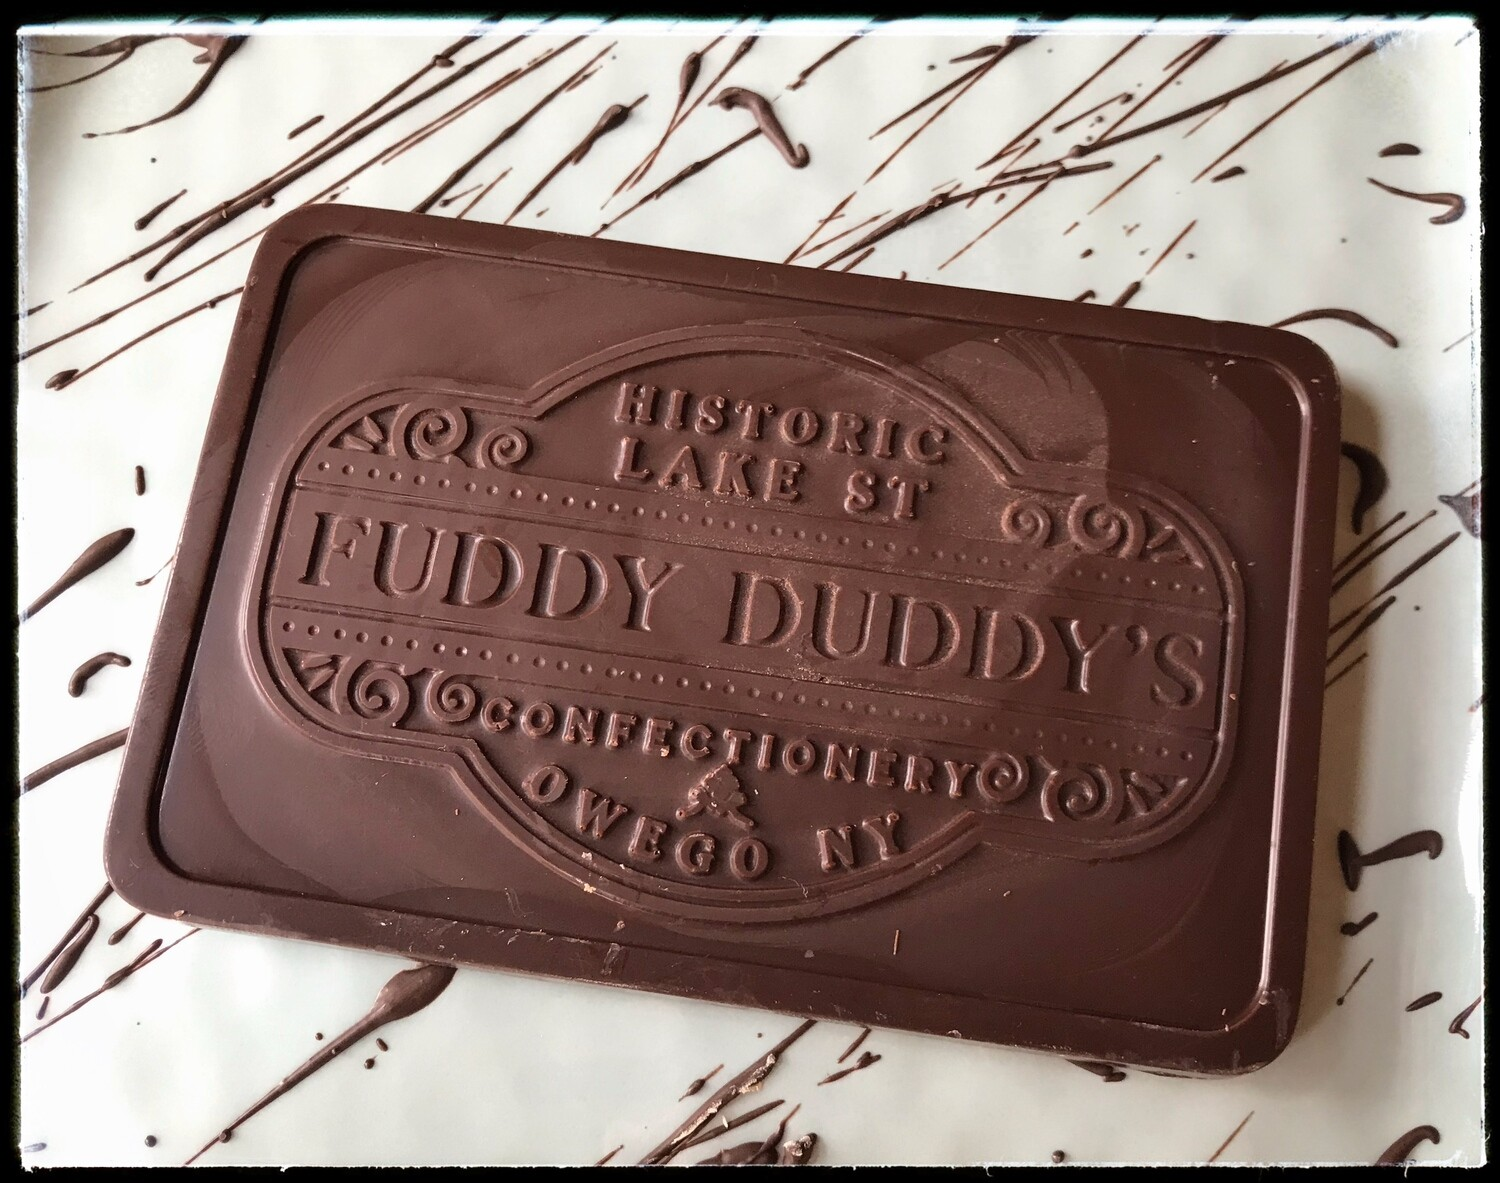 Fuddy Duddy's Dark Chocolate Bar